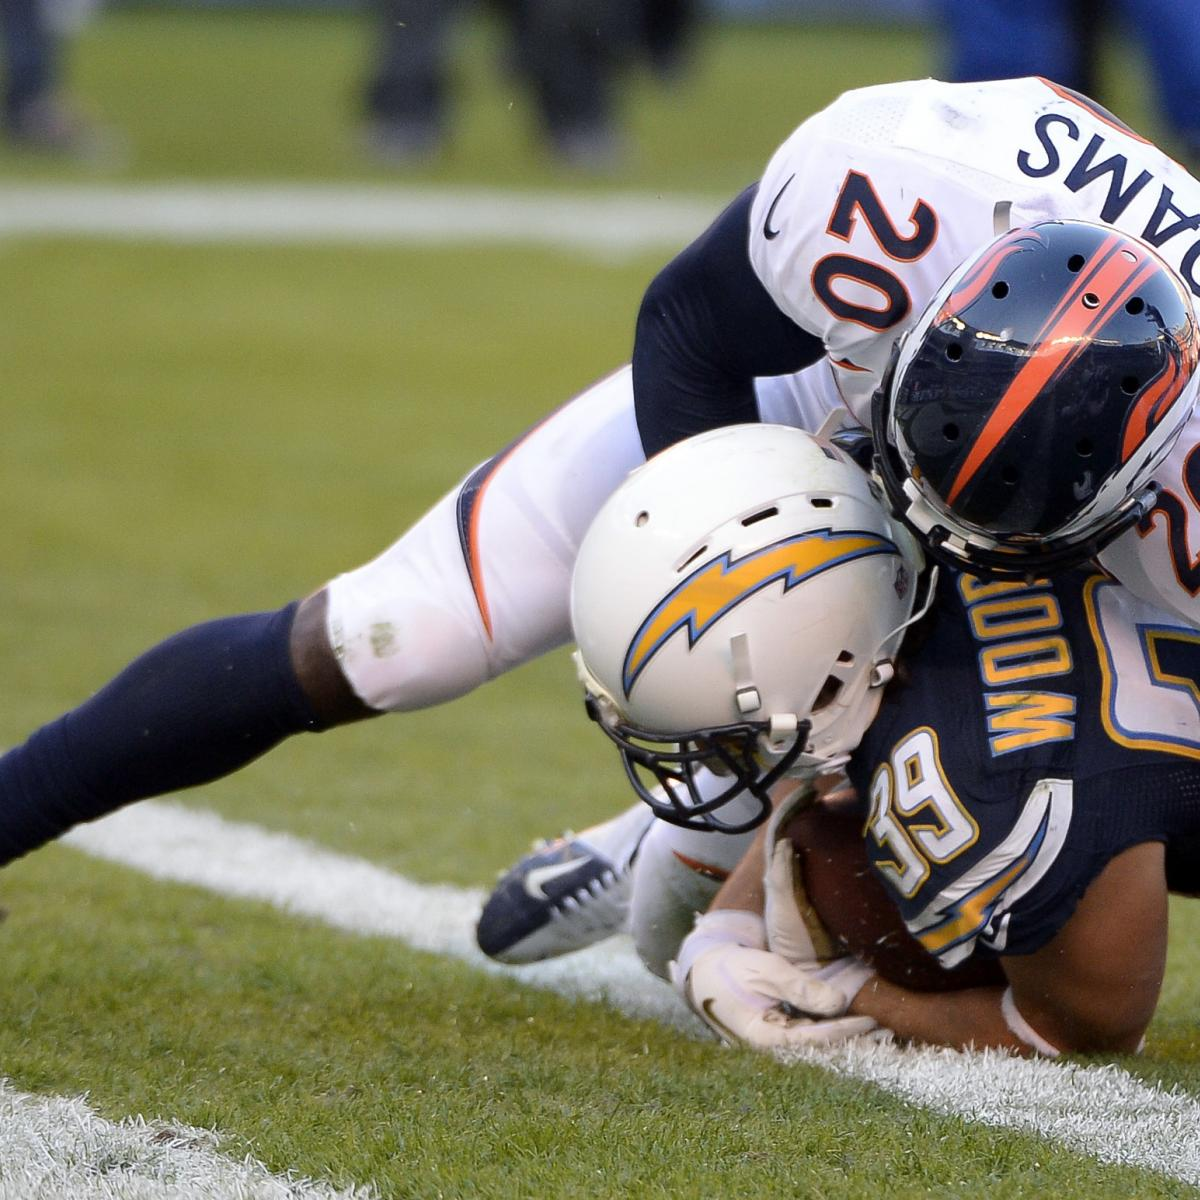 San Diego Chargers At Denver Broncos: San Diego Chargers Position Grades Vs. Denver Broncos